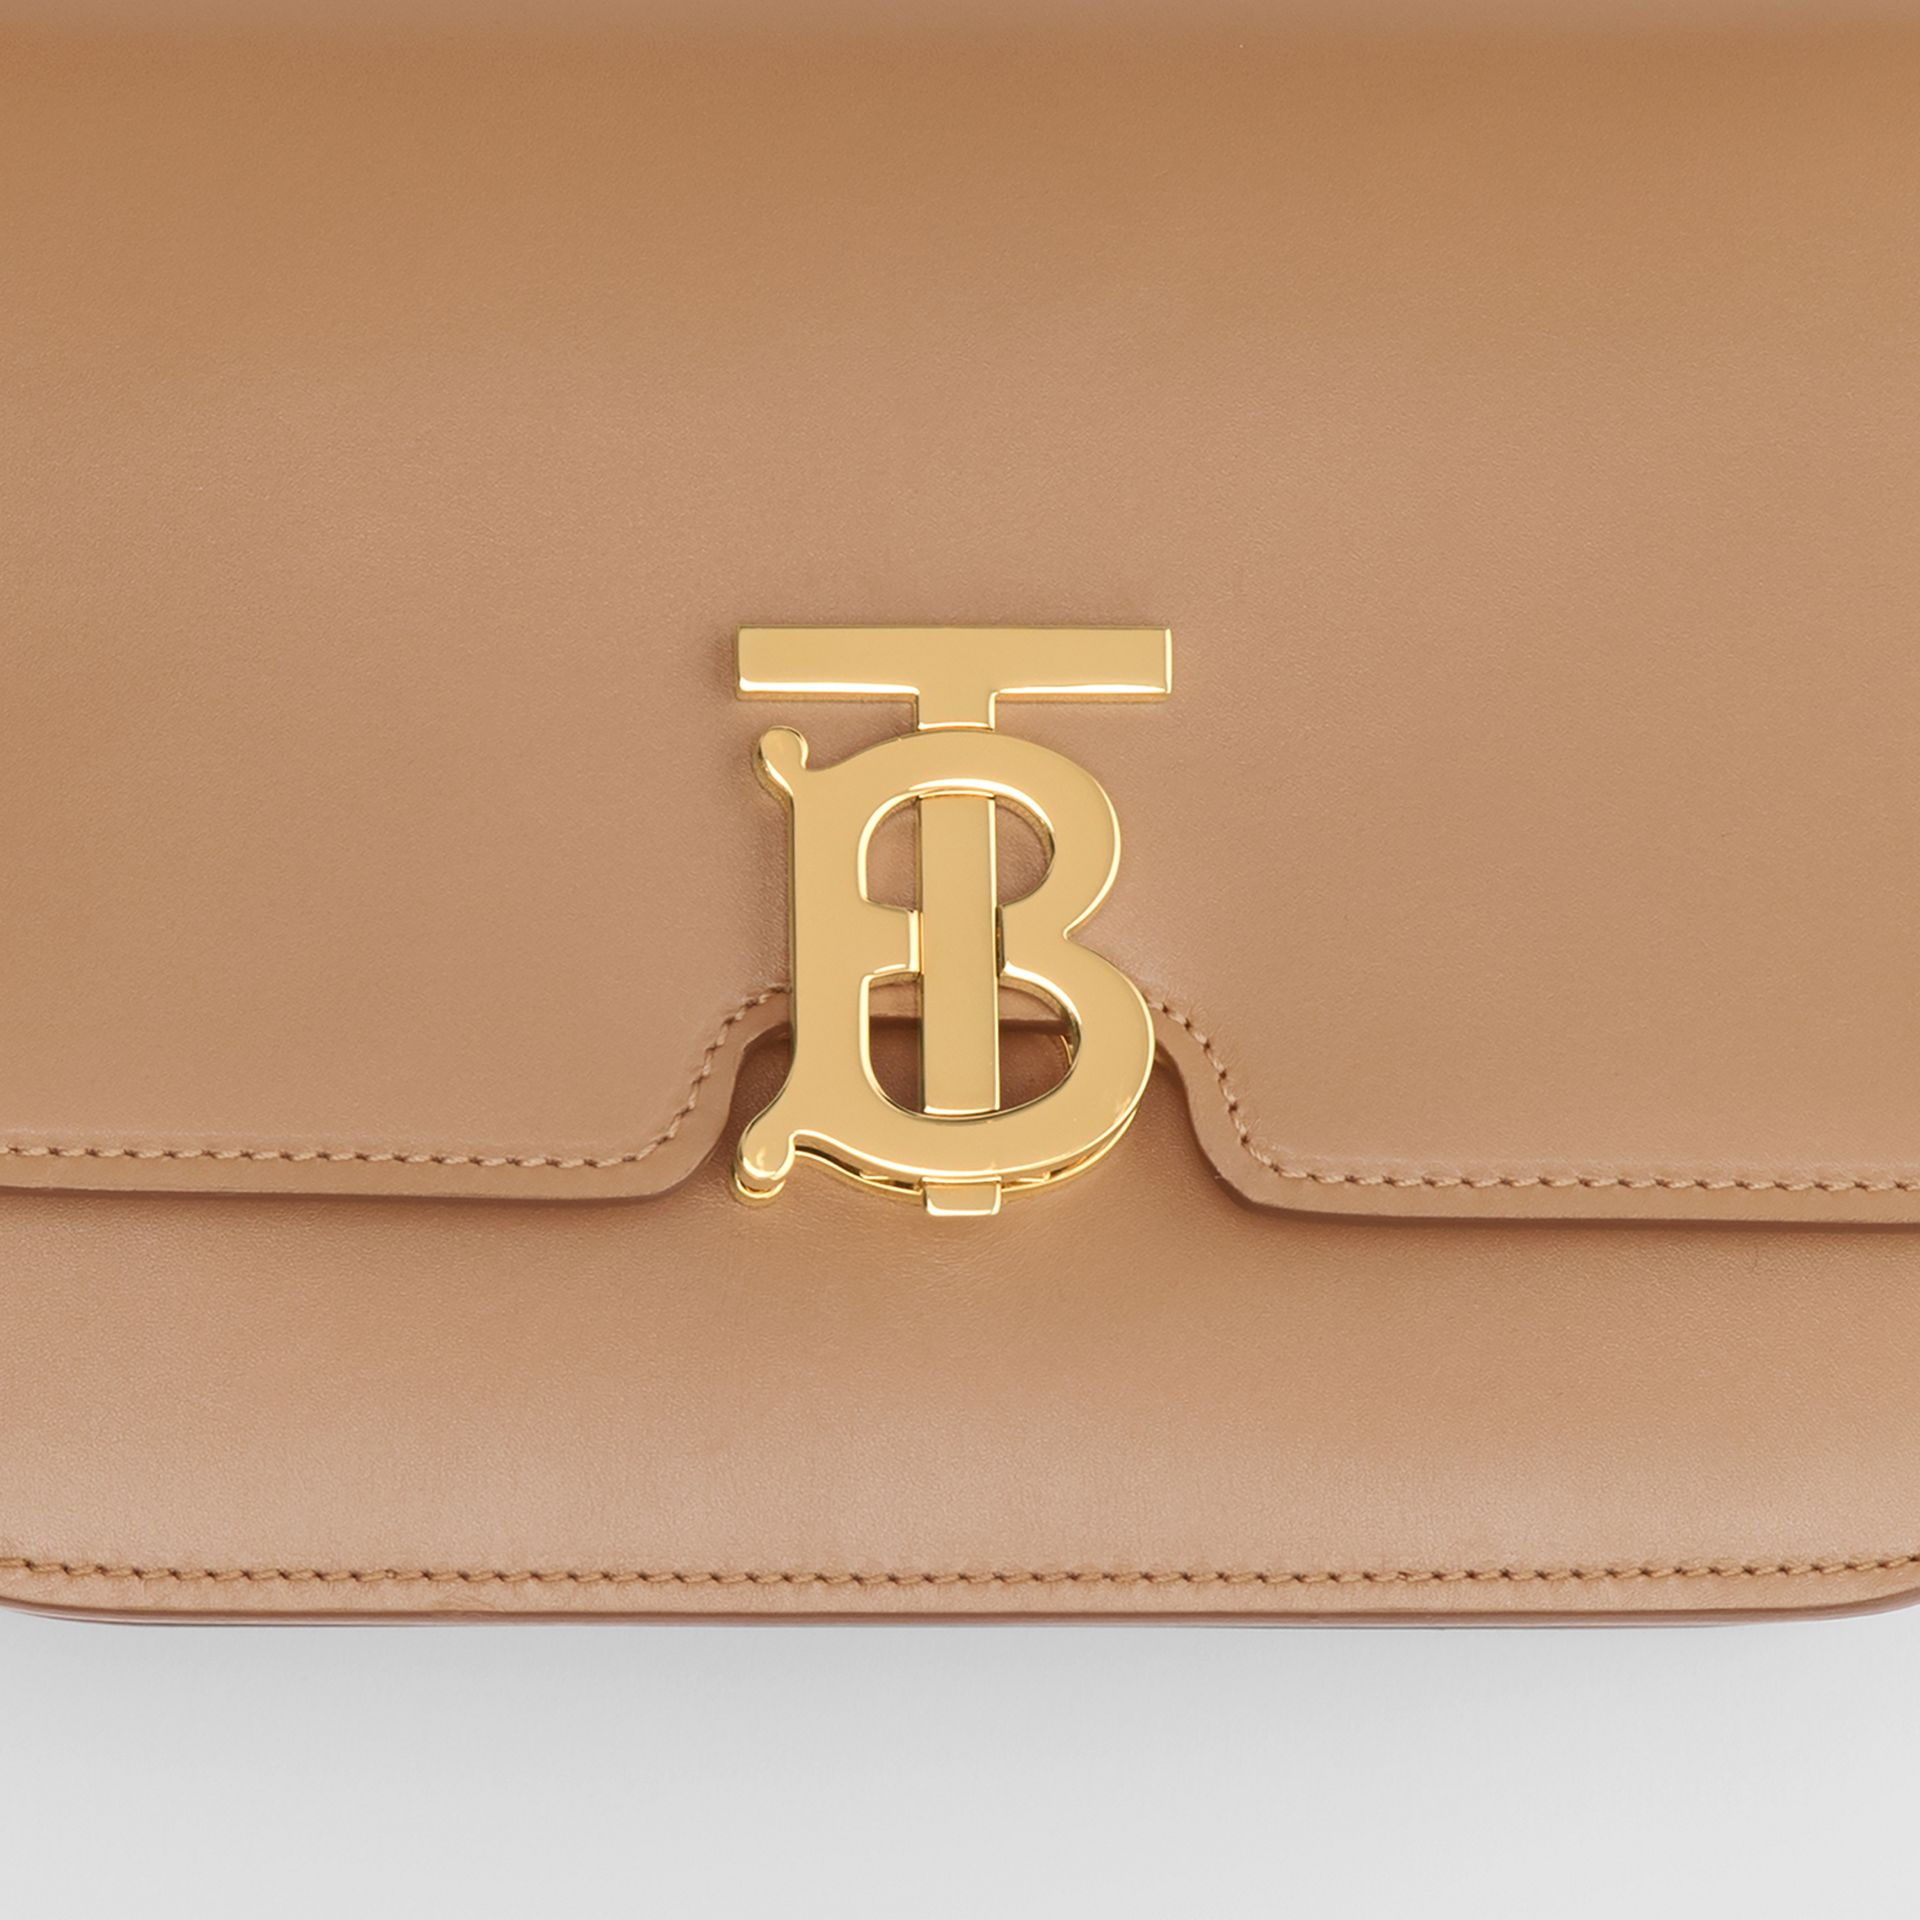 Small Leather TB Bag in Light Camel - Women | Burberry United Kingdom - gallery image 1